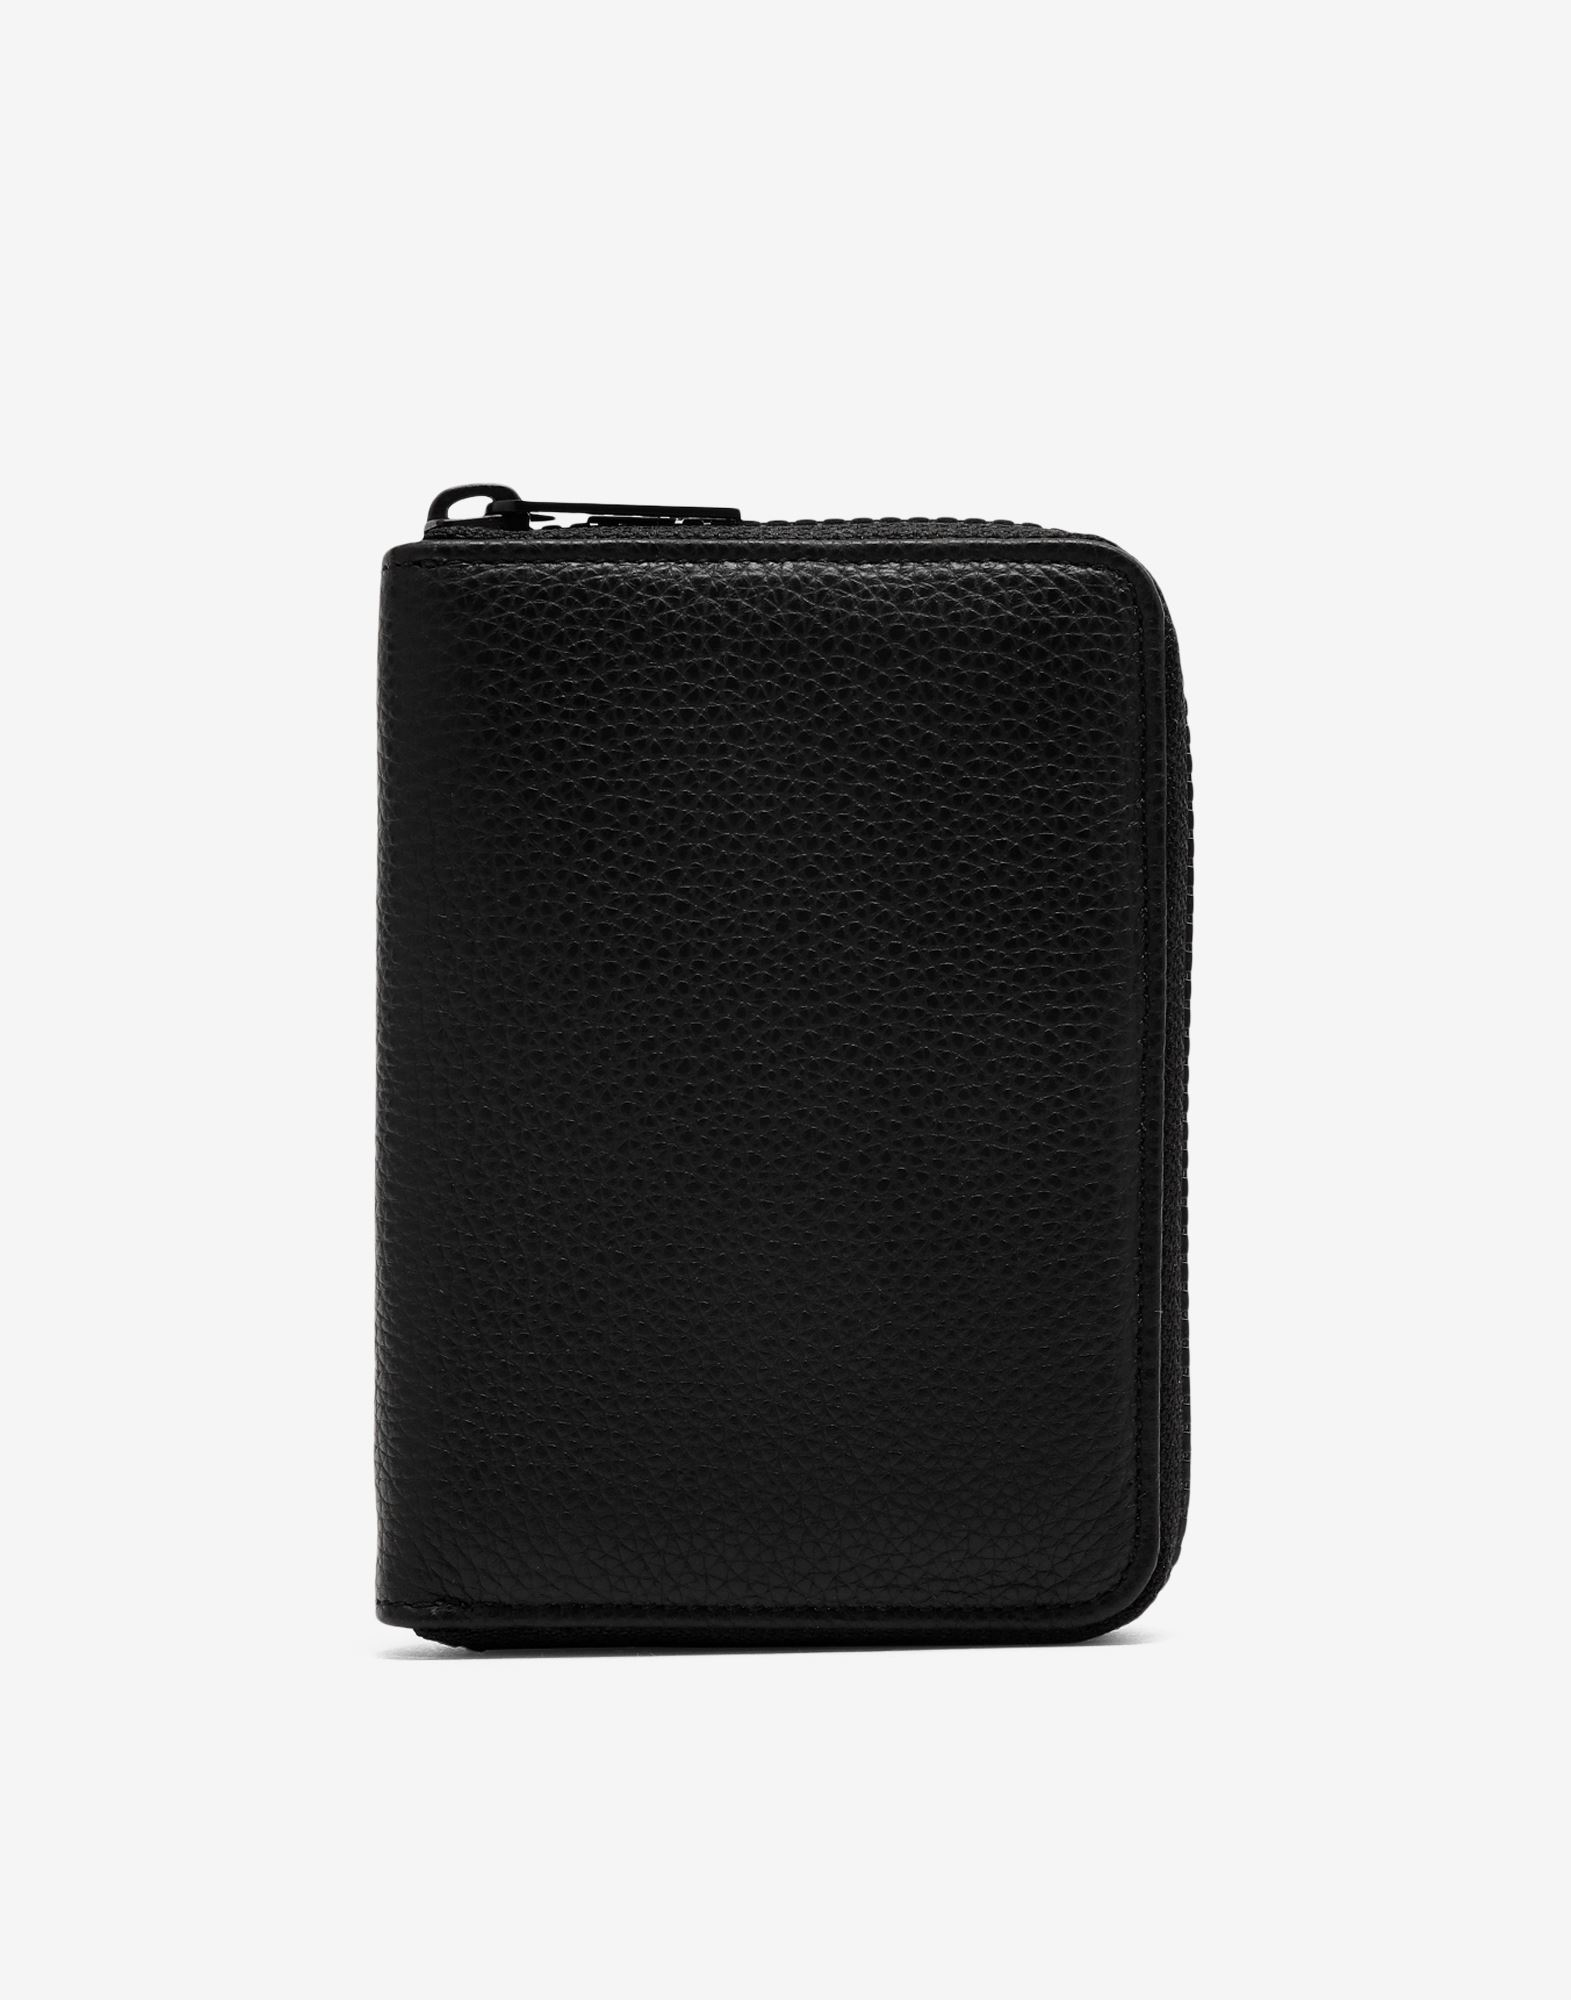 MAISON MARGIELA Zip-around grainy leather wallet Wallets Man f